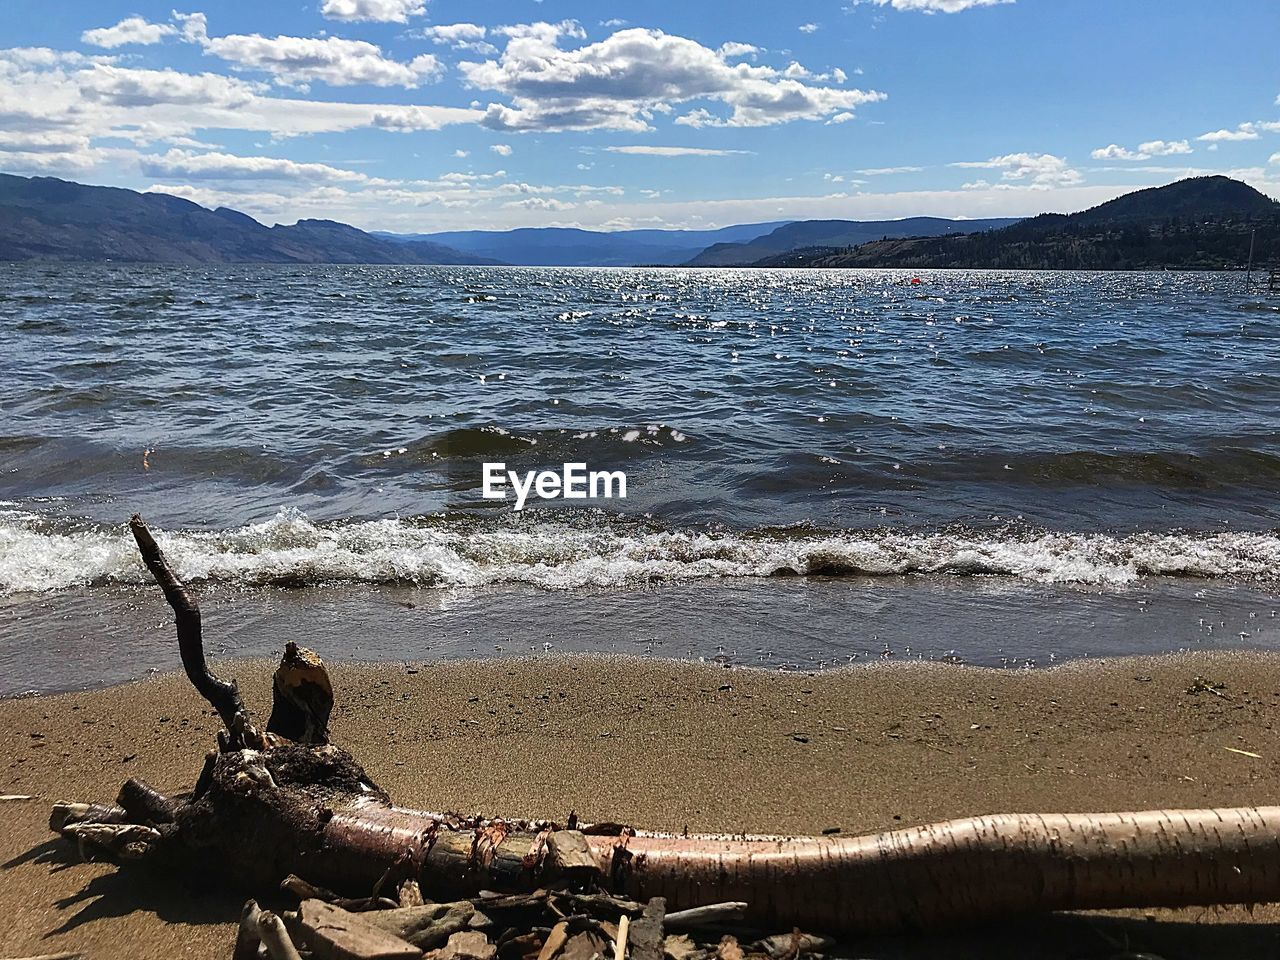 water, beach, sea, land, scenics - nature, beauty in nature, sky, nature, tranquility, day, cloud - sky, tranquil scene, idyllic, non-urban scene, no people, wave, mountain, motion, outdoors, driftwood